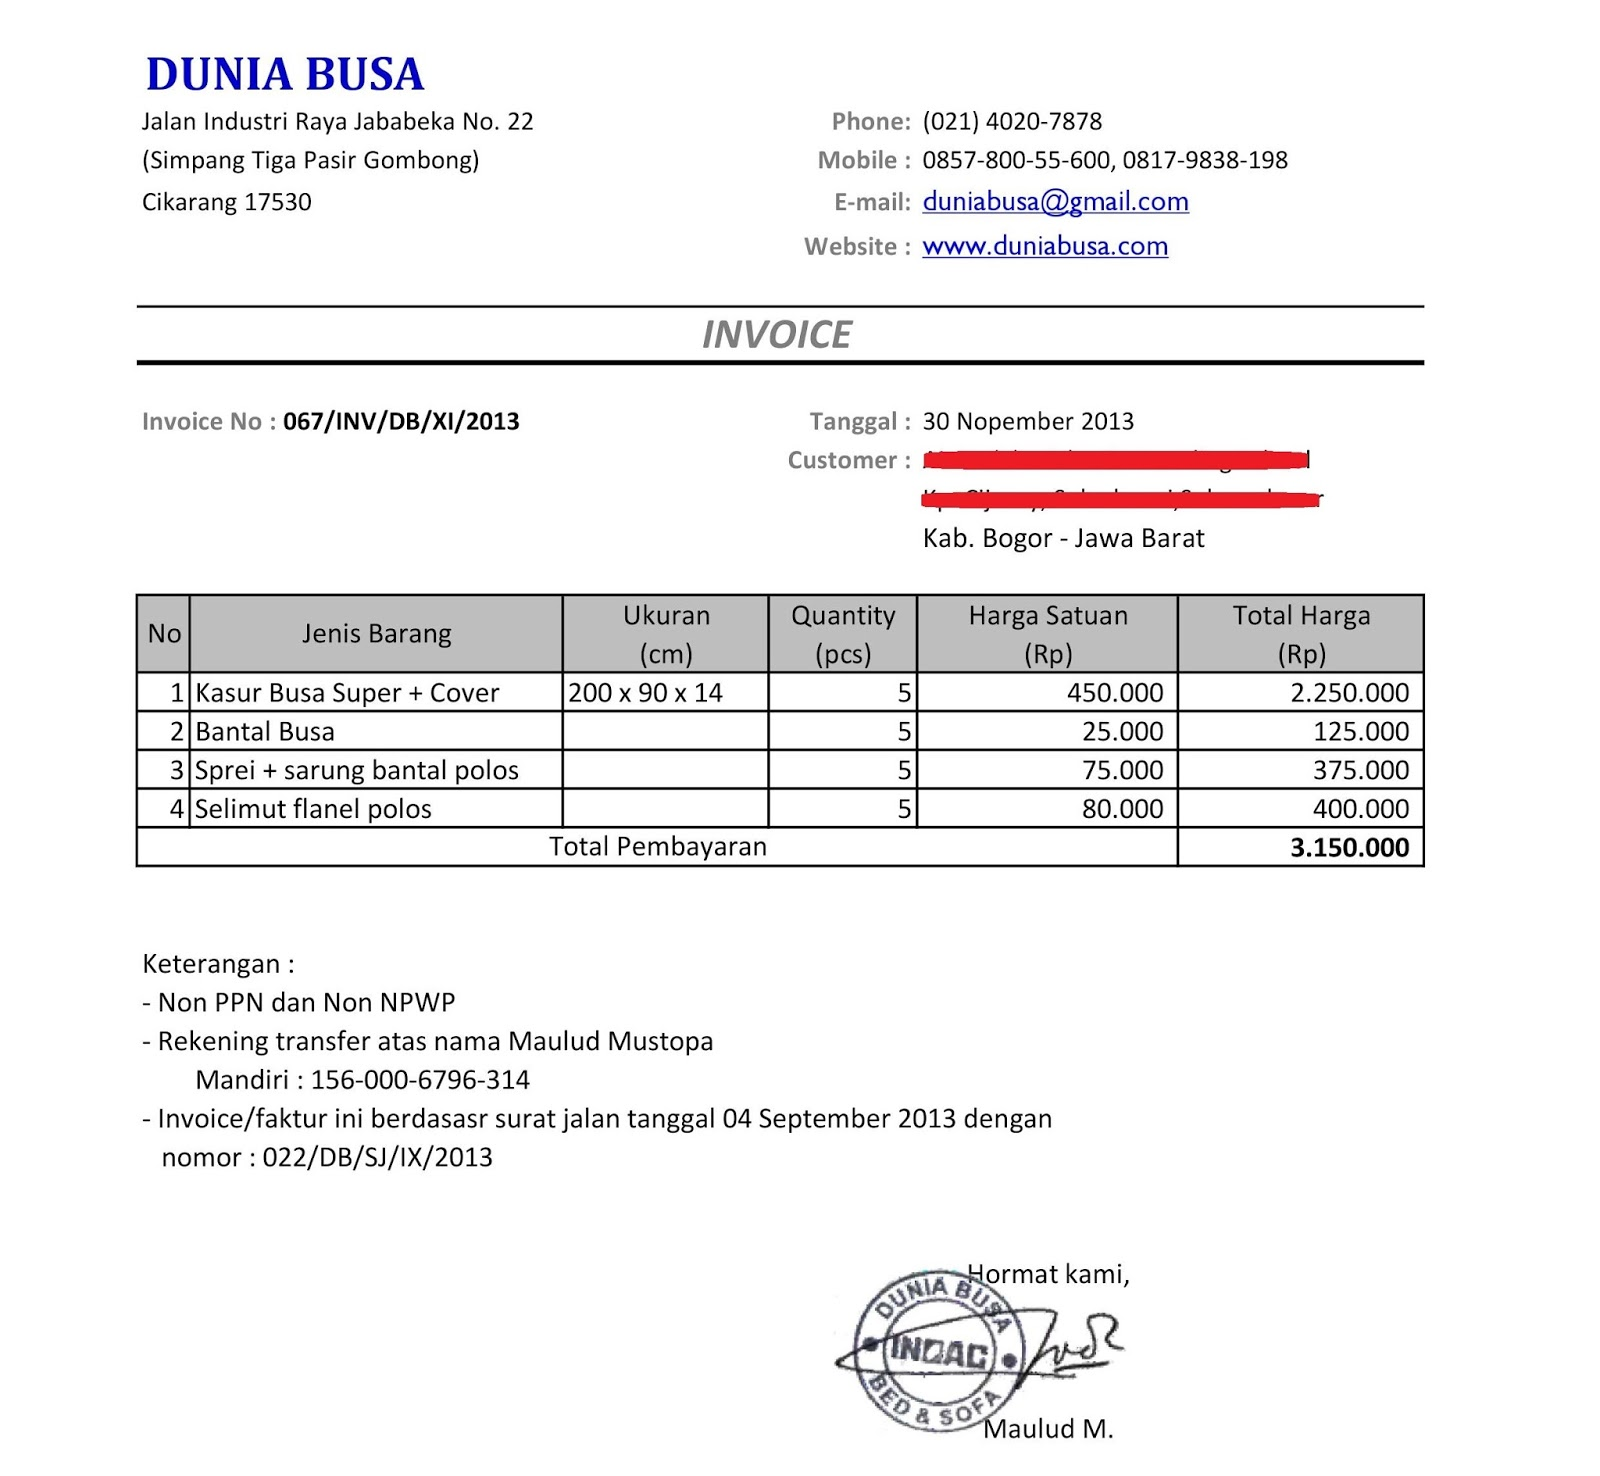 Centralasianshepherdus  Sweet Free Invoice Online  Create Invoice Online  Invoice Template  With Gorgeous Contoh Format Invoice Atau Surat Tagihan  Brankas Arsip  Free Invoice Online With Comely Sample Plumbing Invoice Also  Highlander Invoice In Addition Free Invoice App For Android And Request For Invoice As Well As Commercial Proforma Invoice Additionally Paypal Invoice Api From Sklepco With Centralasianshepherdus  Gorgeous Free Invoice Online  Create Invoice Online  Invoice Template  With Comely Contoh Format Invoice Atau Surat Tagihan  Brankas Arsip  Free Invoice Online And Sweet Sample Plumbing Invoice Also  Highlander Invoice In Addition Free Invoice App For Android From Sklepco